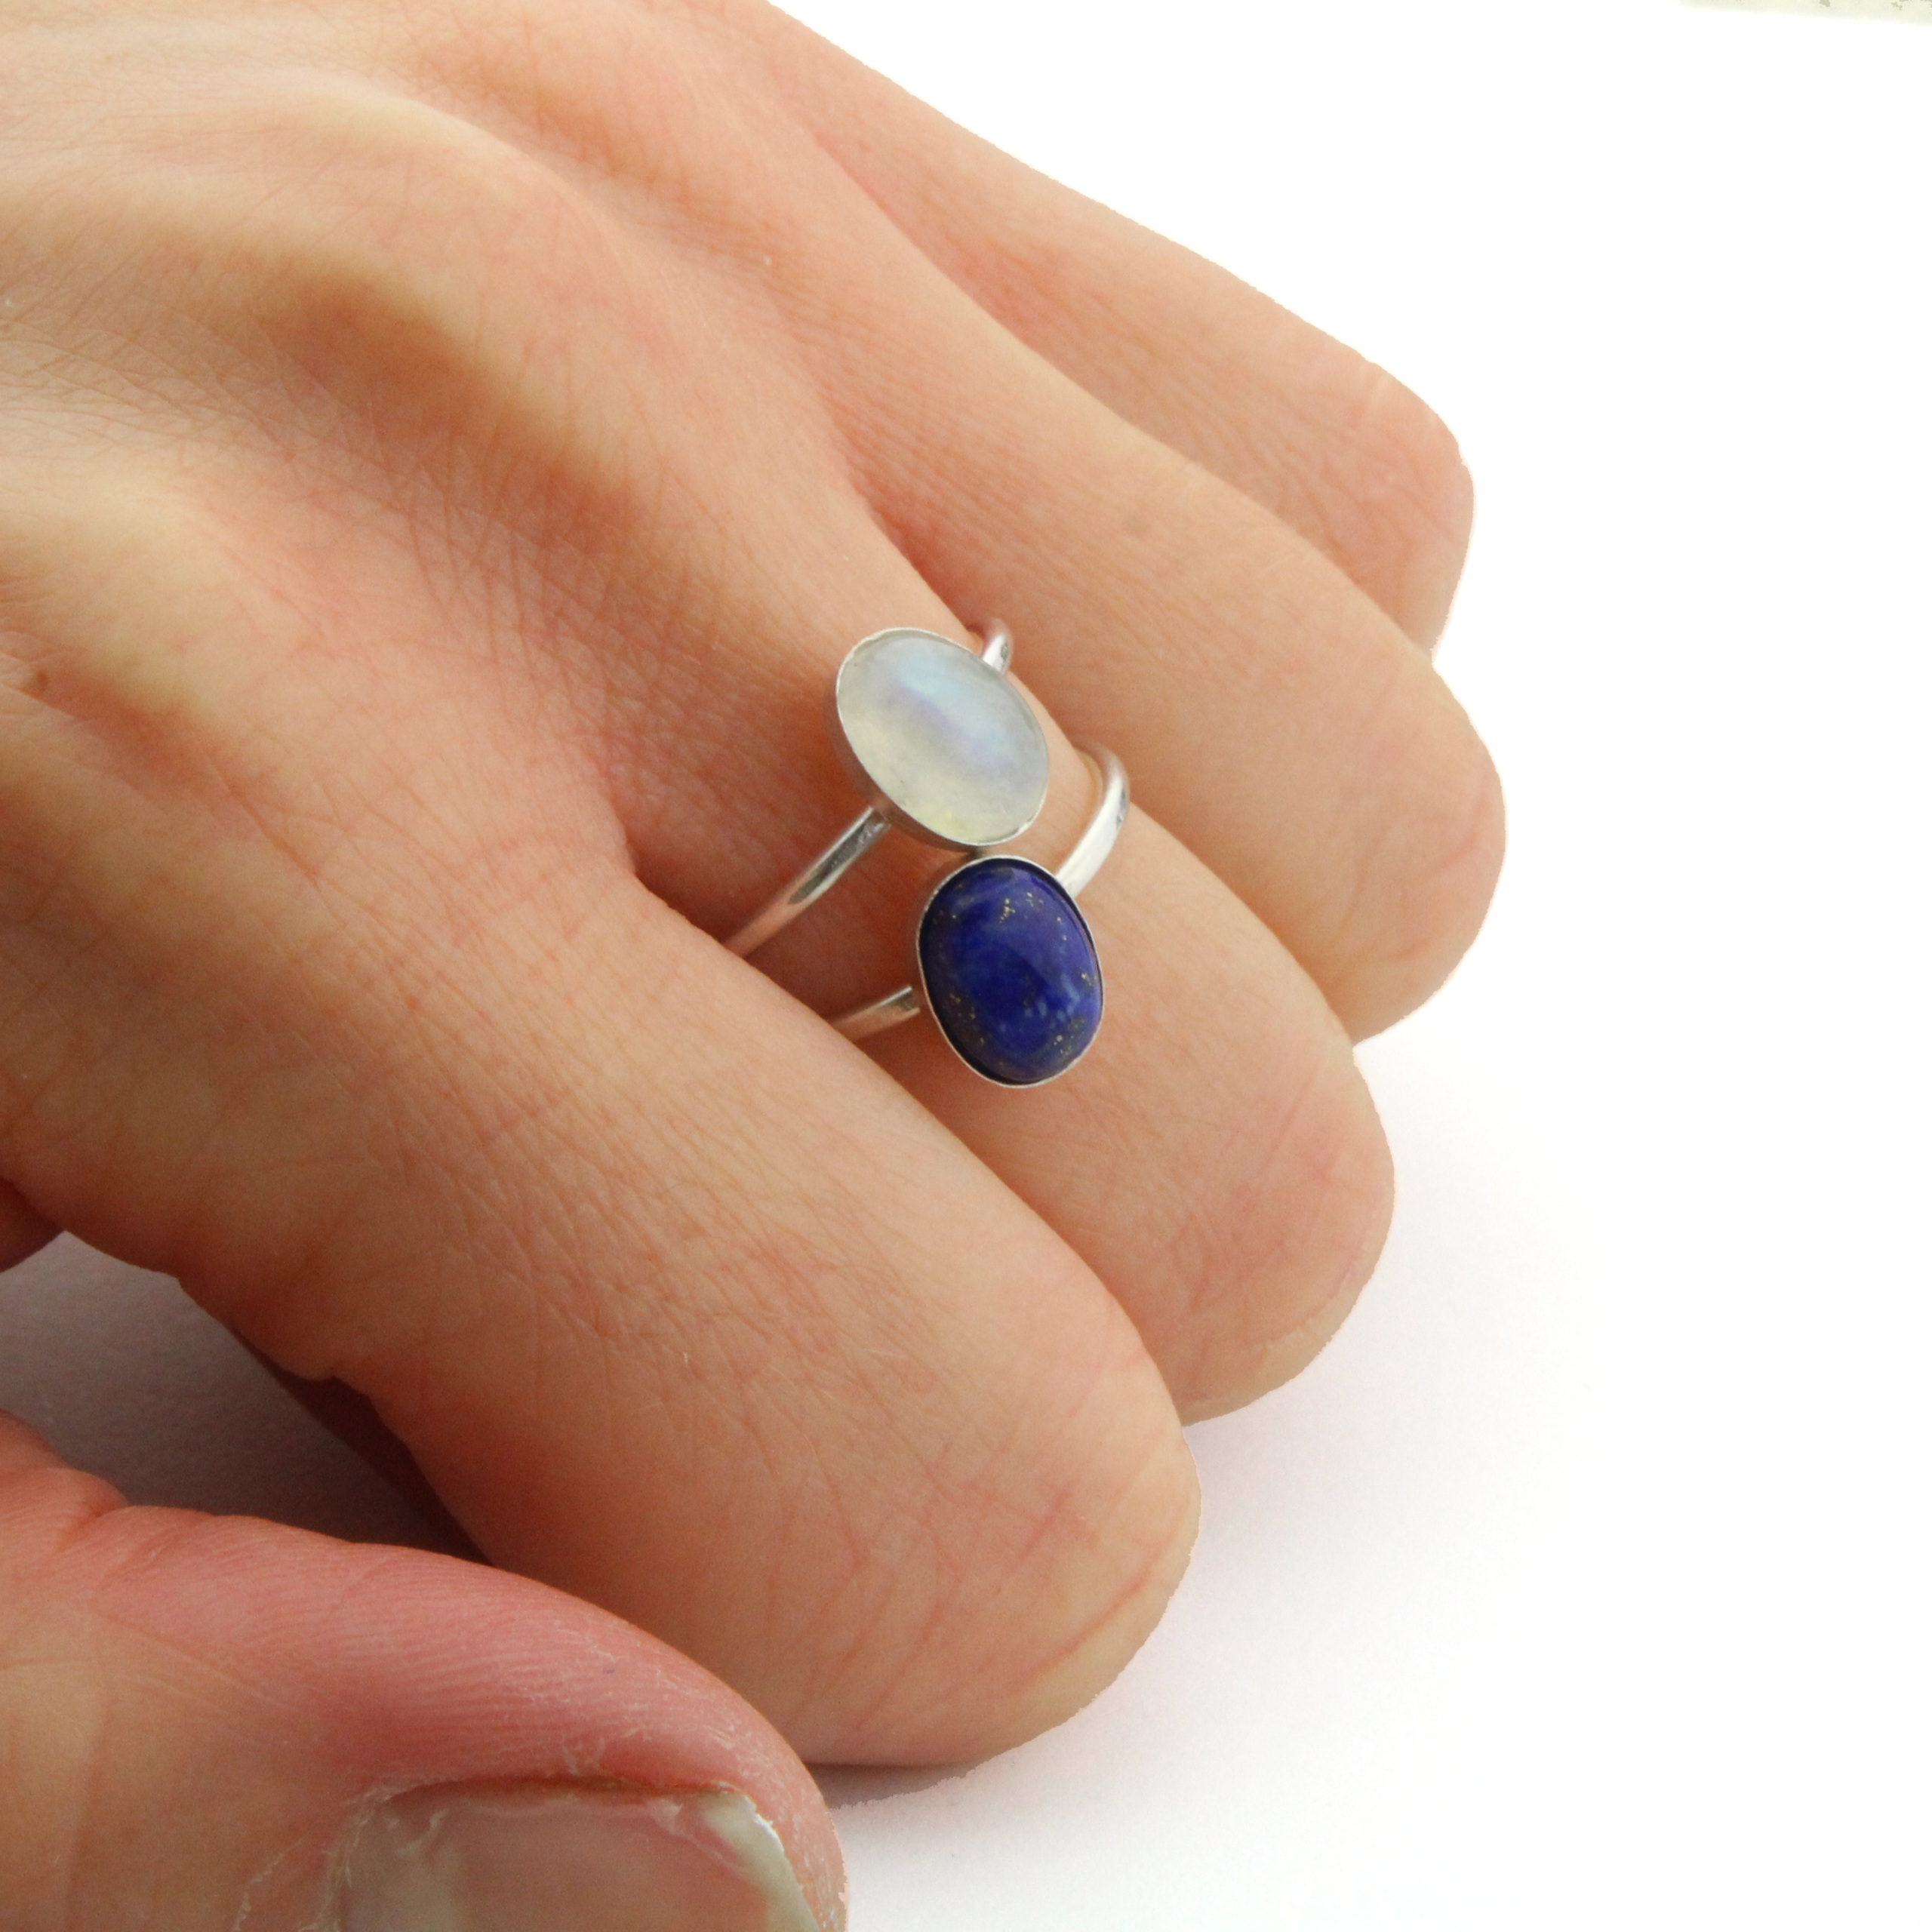 shop ella chestnut rings forge the raw tear ring diamond engagement moonstone